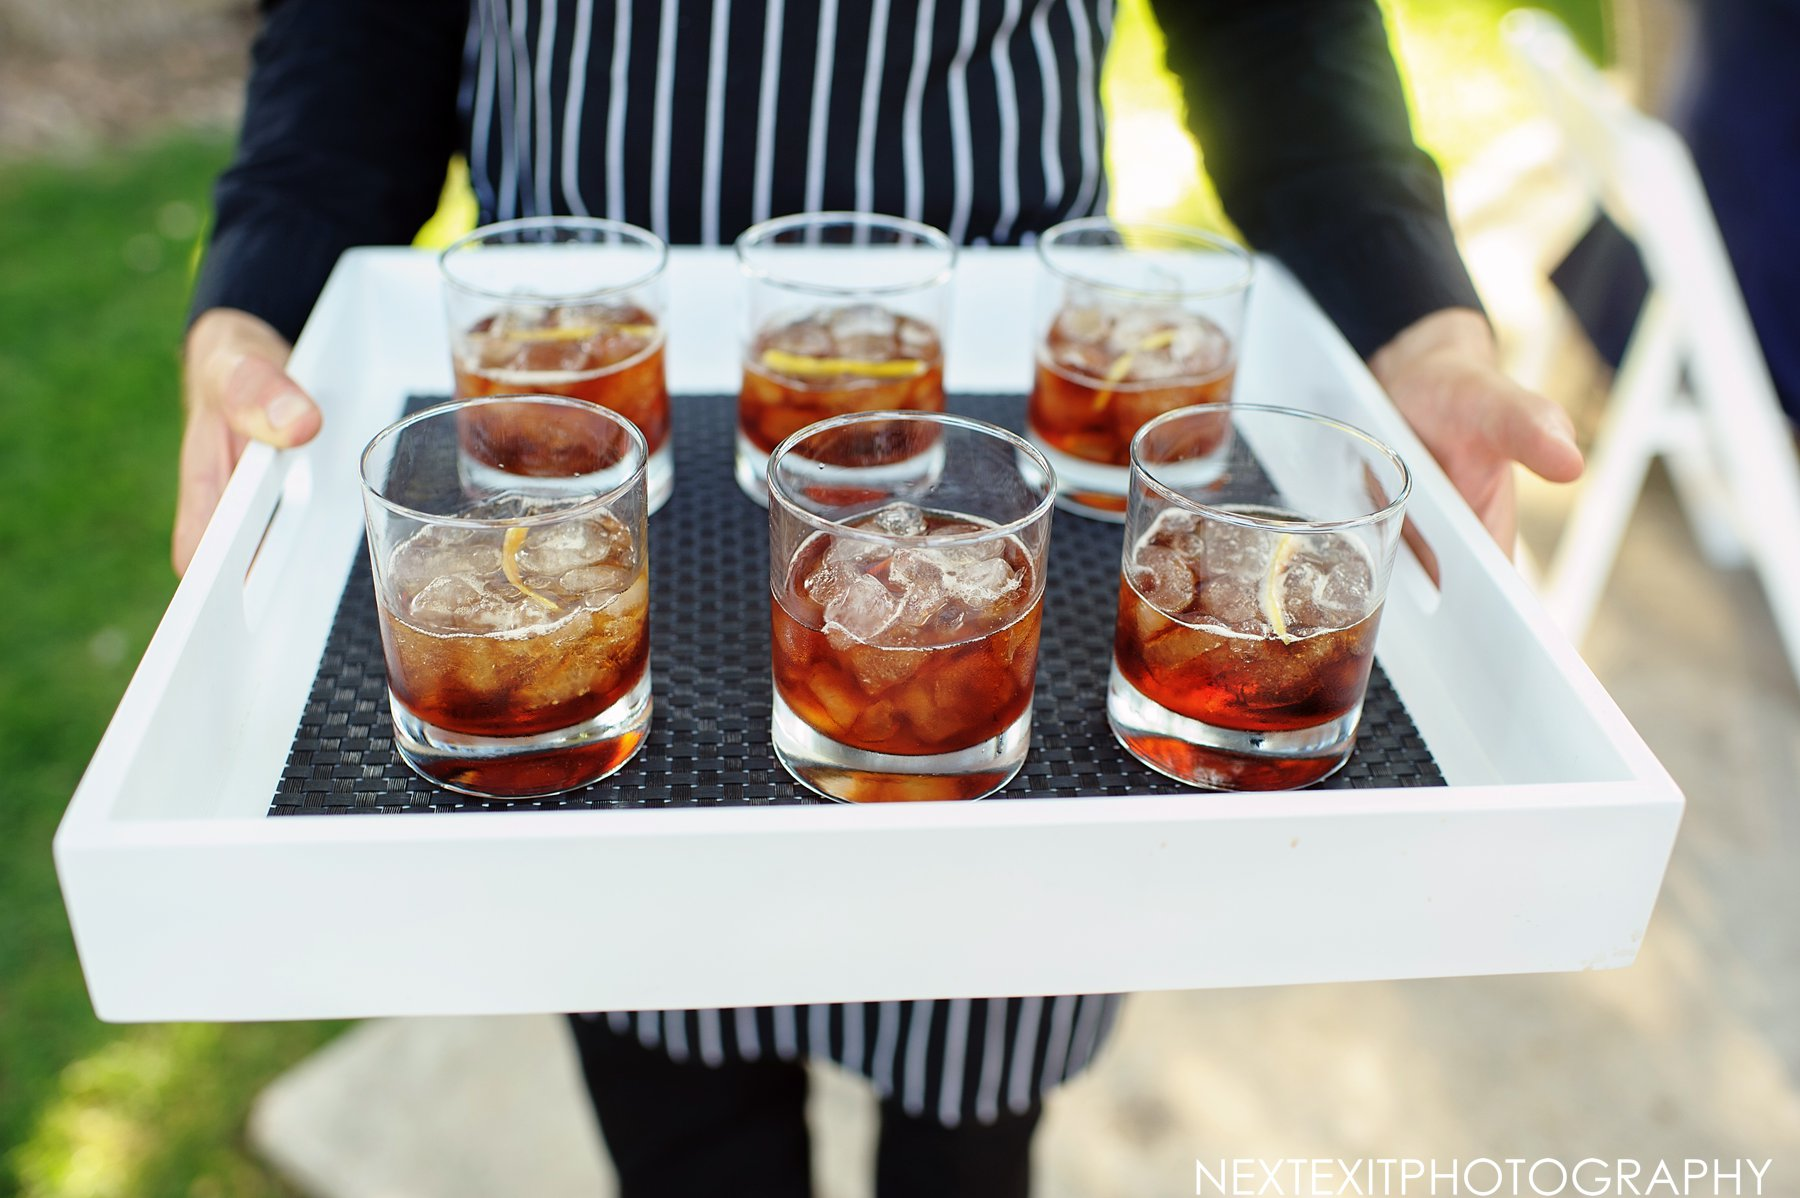 The Groom's Signature Drink